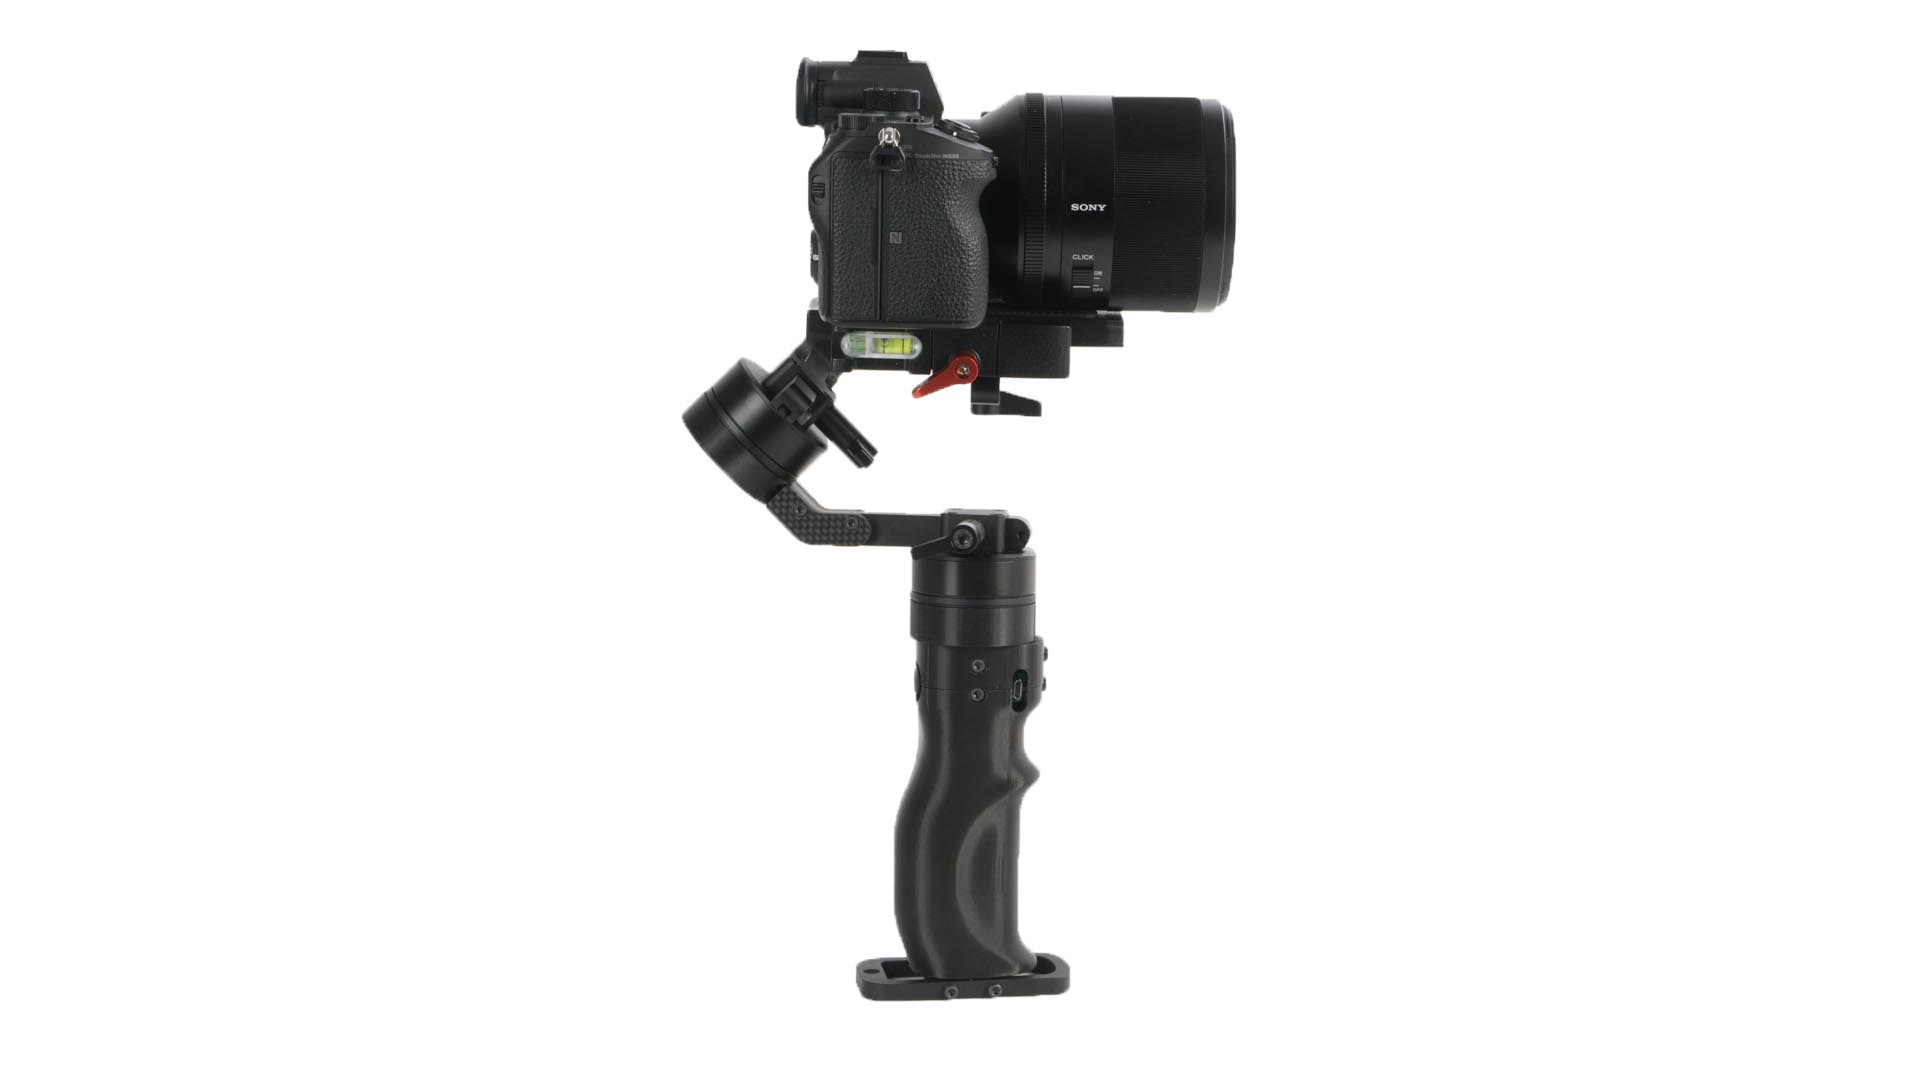 icecam gimbal tiny 3 vision 2